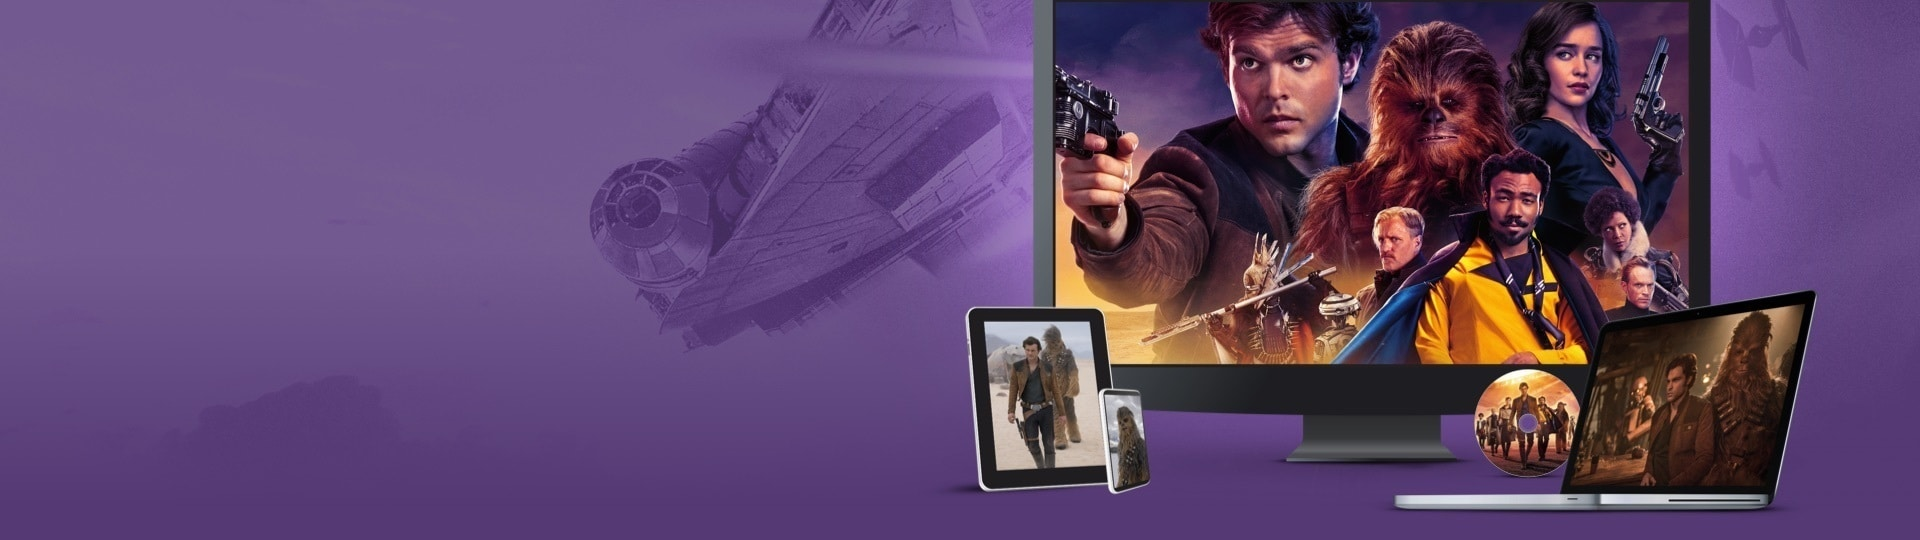 Han Solo: Una Historia De Star Wars | Ya disponible en DVD, Blu-ray y compra digital